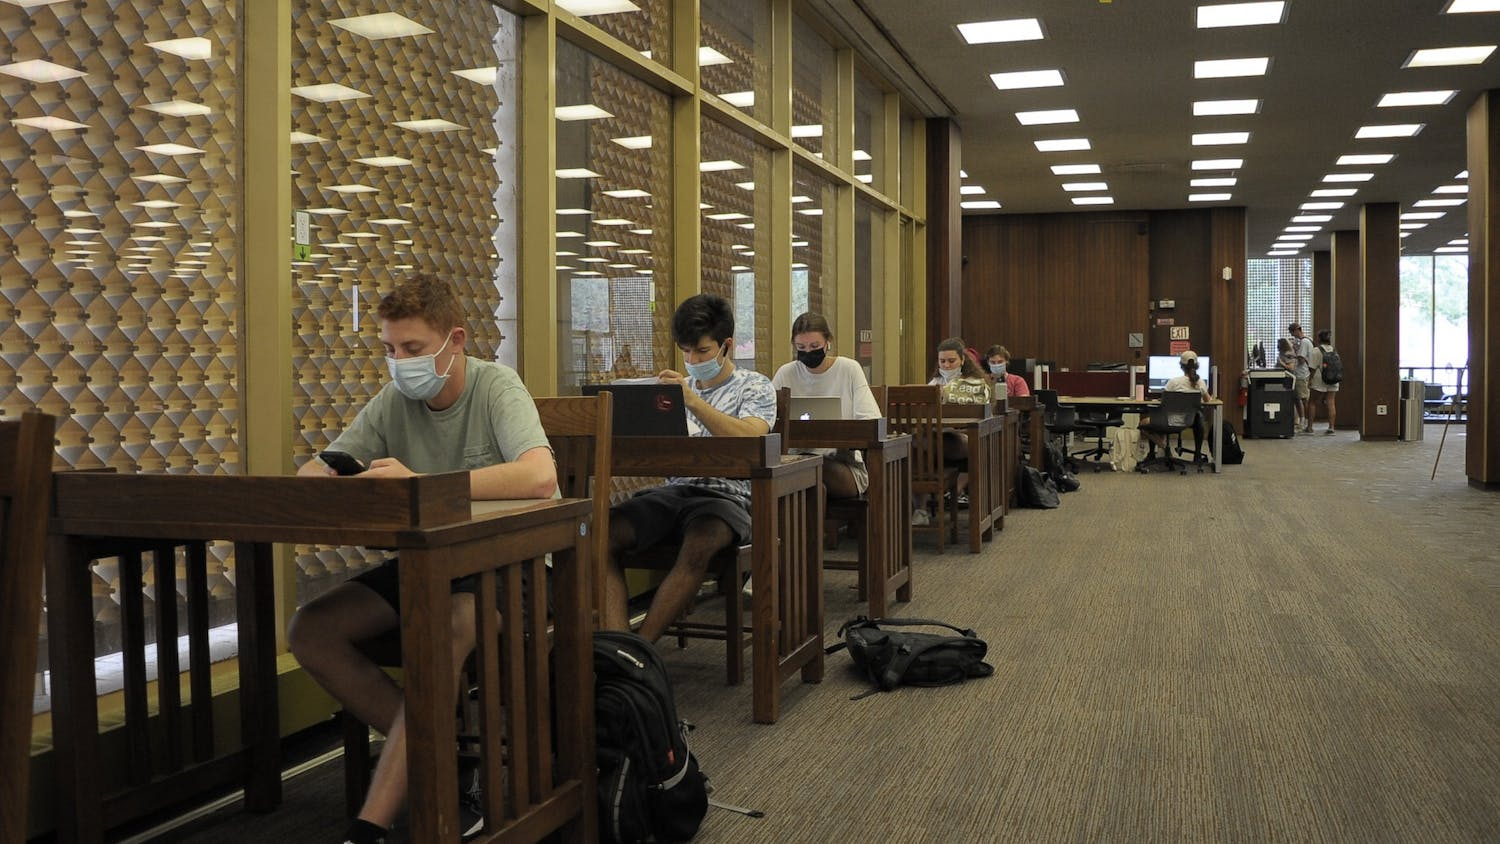 Students sit in USC's Thomas Cooper Library. To follow the university's current mask mandate, students must wear masks in all university buildings and classrooms.